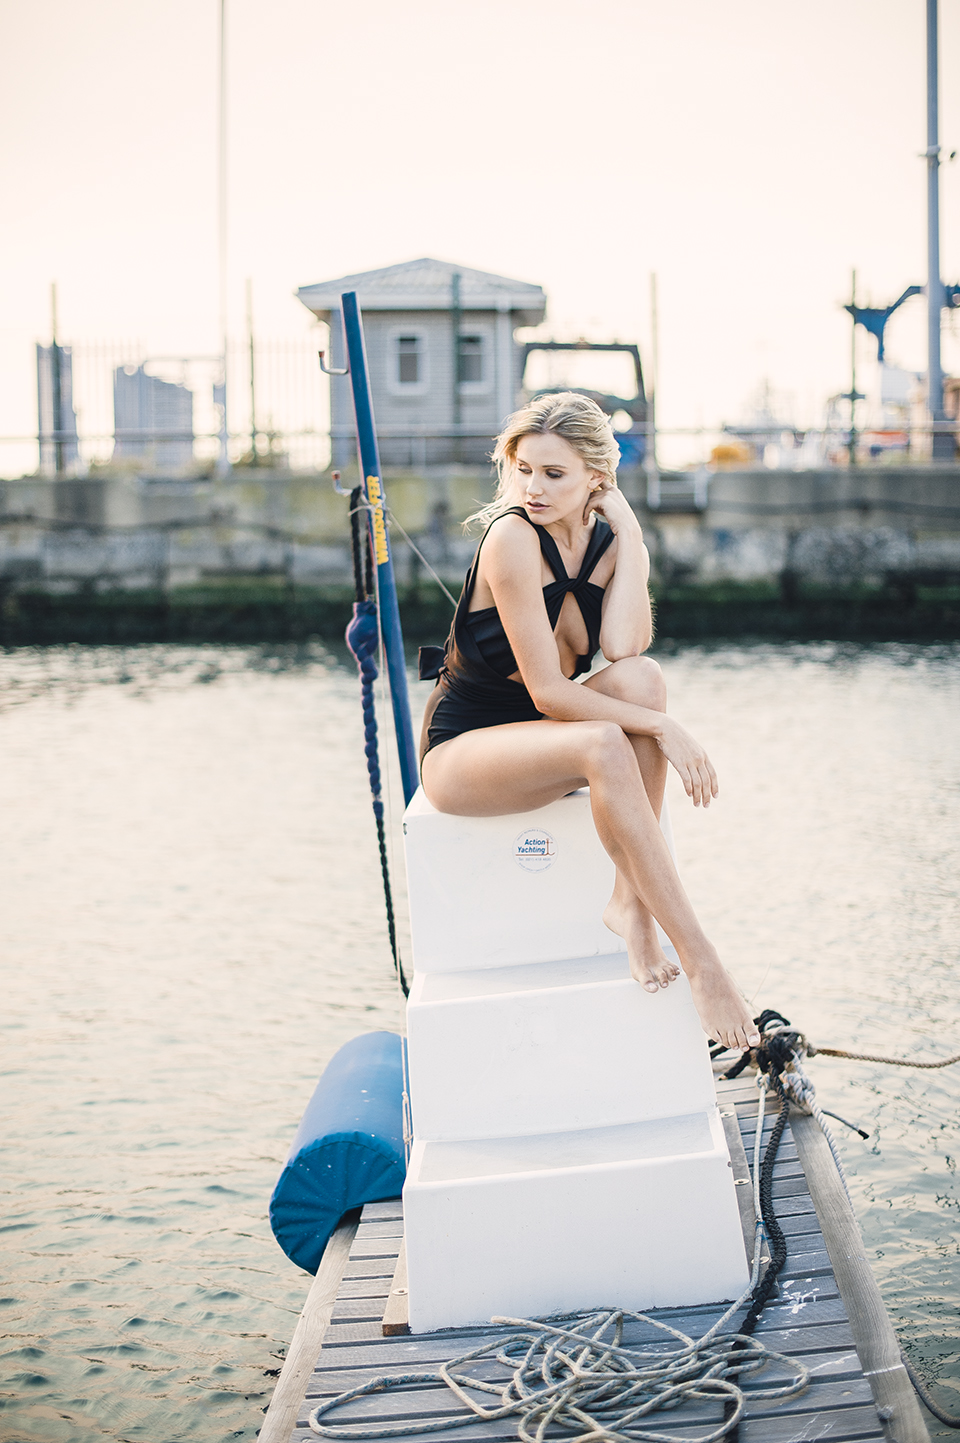 RyanParker_CapeTown_Photographer_Editorial_Fashion_Yacht_Nautical_RyanParker_CapeTown_Photographer_Editorial_Fashion_Yacht_Nautical_DSC_1654.jpg